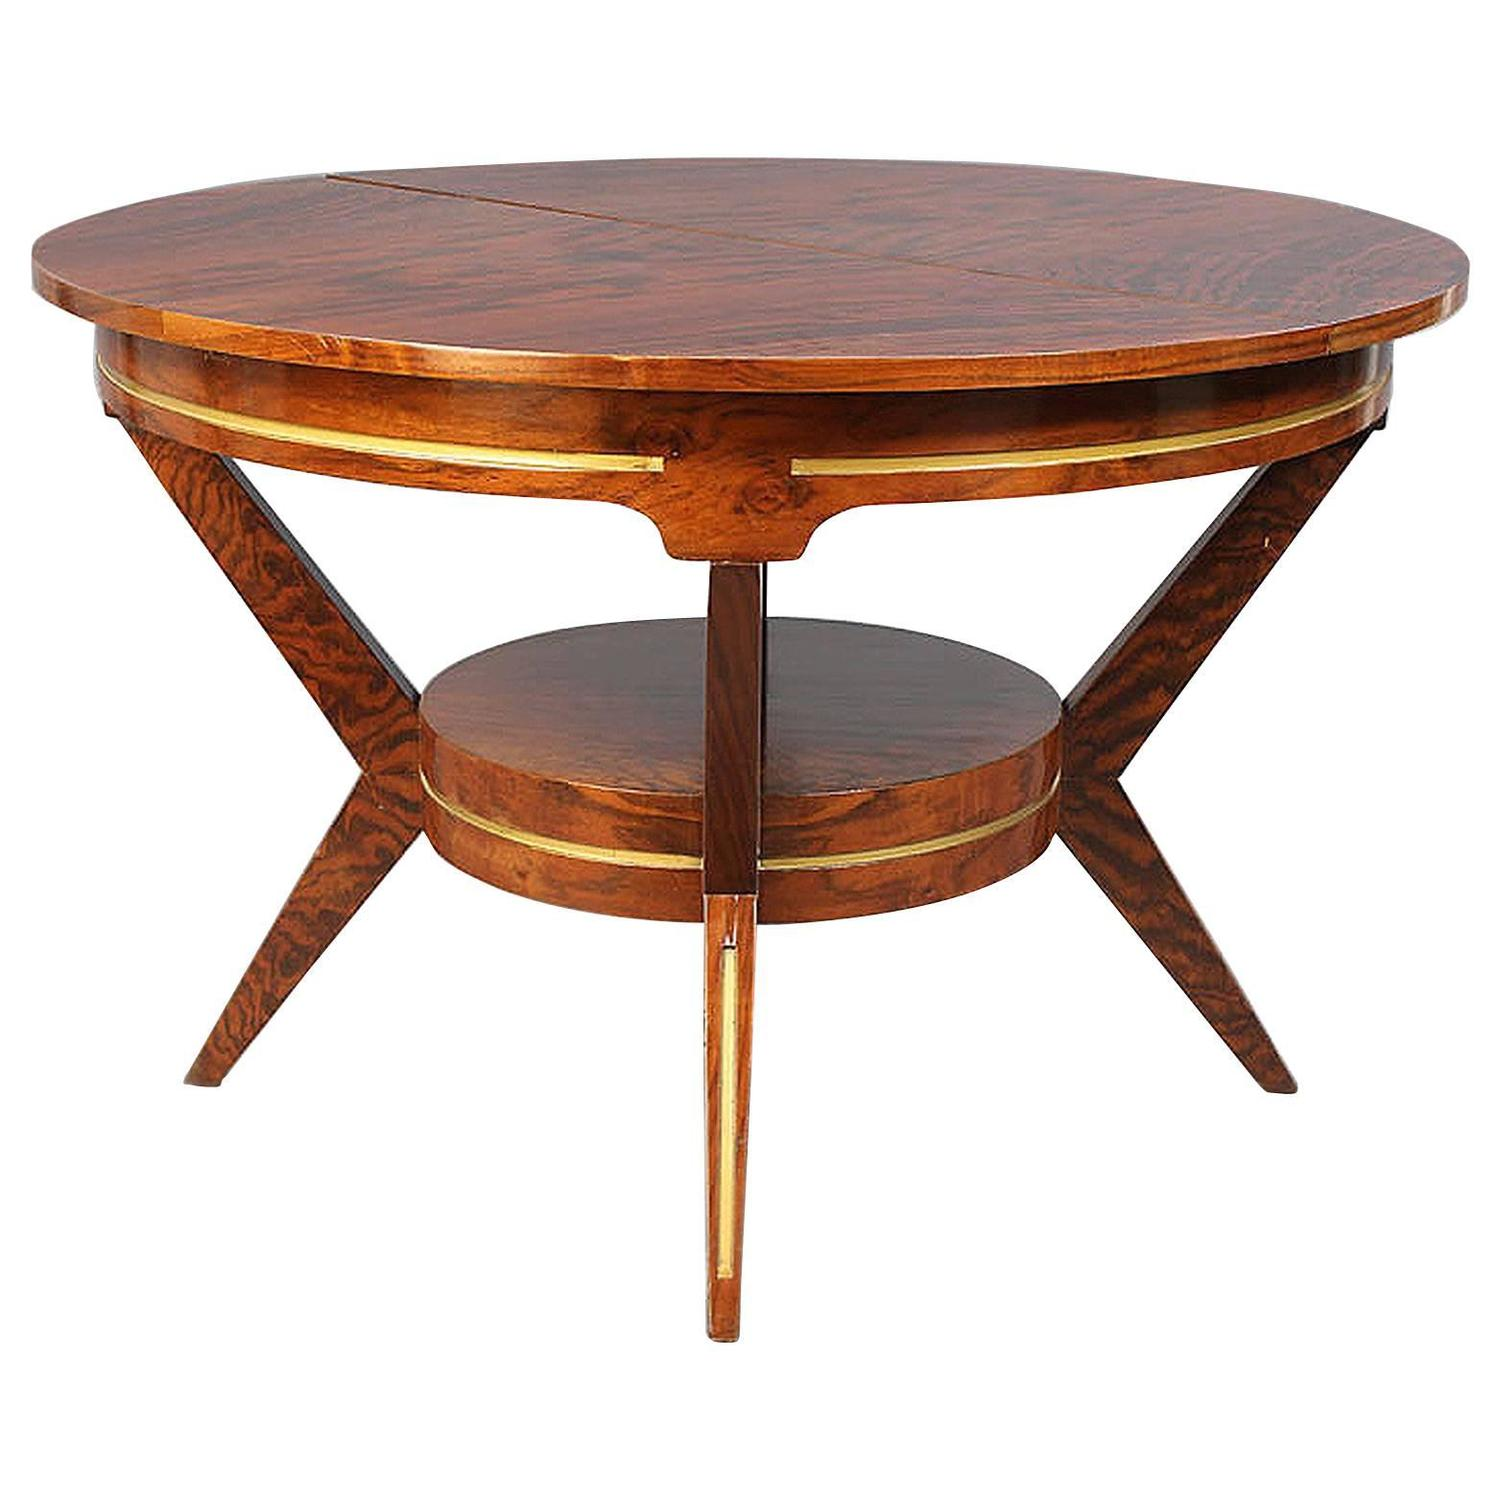 Walnut Mid Century Modern Dining Table For Sale at 1stdibs